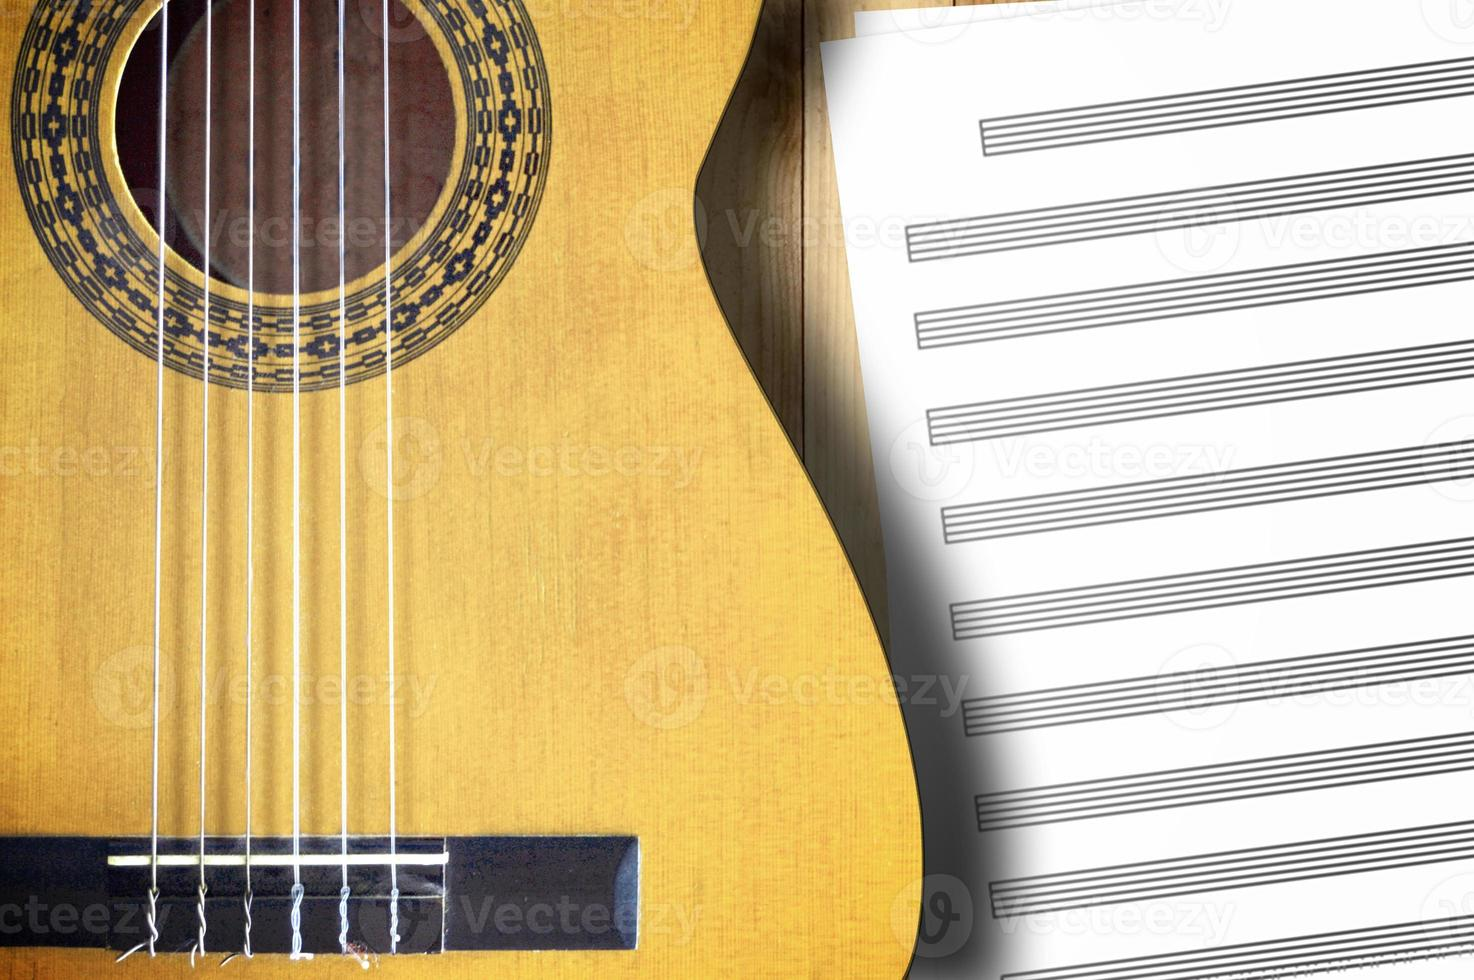 Spanish Guitar with blank score sheets. photo